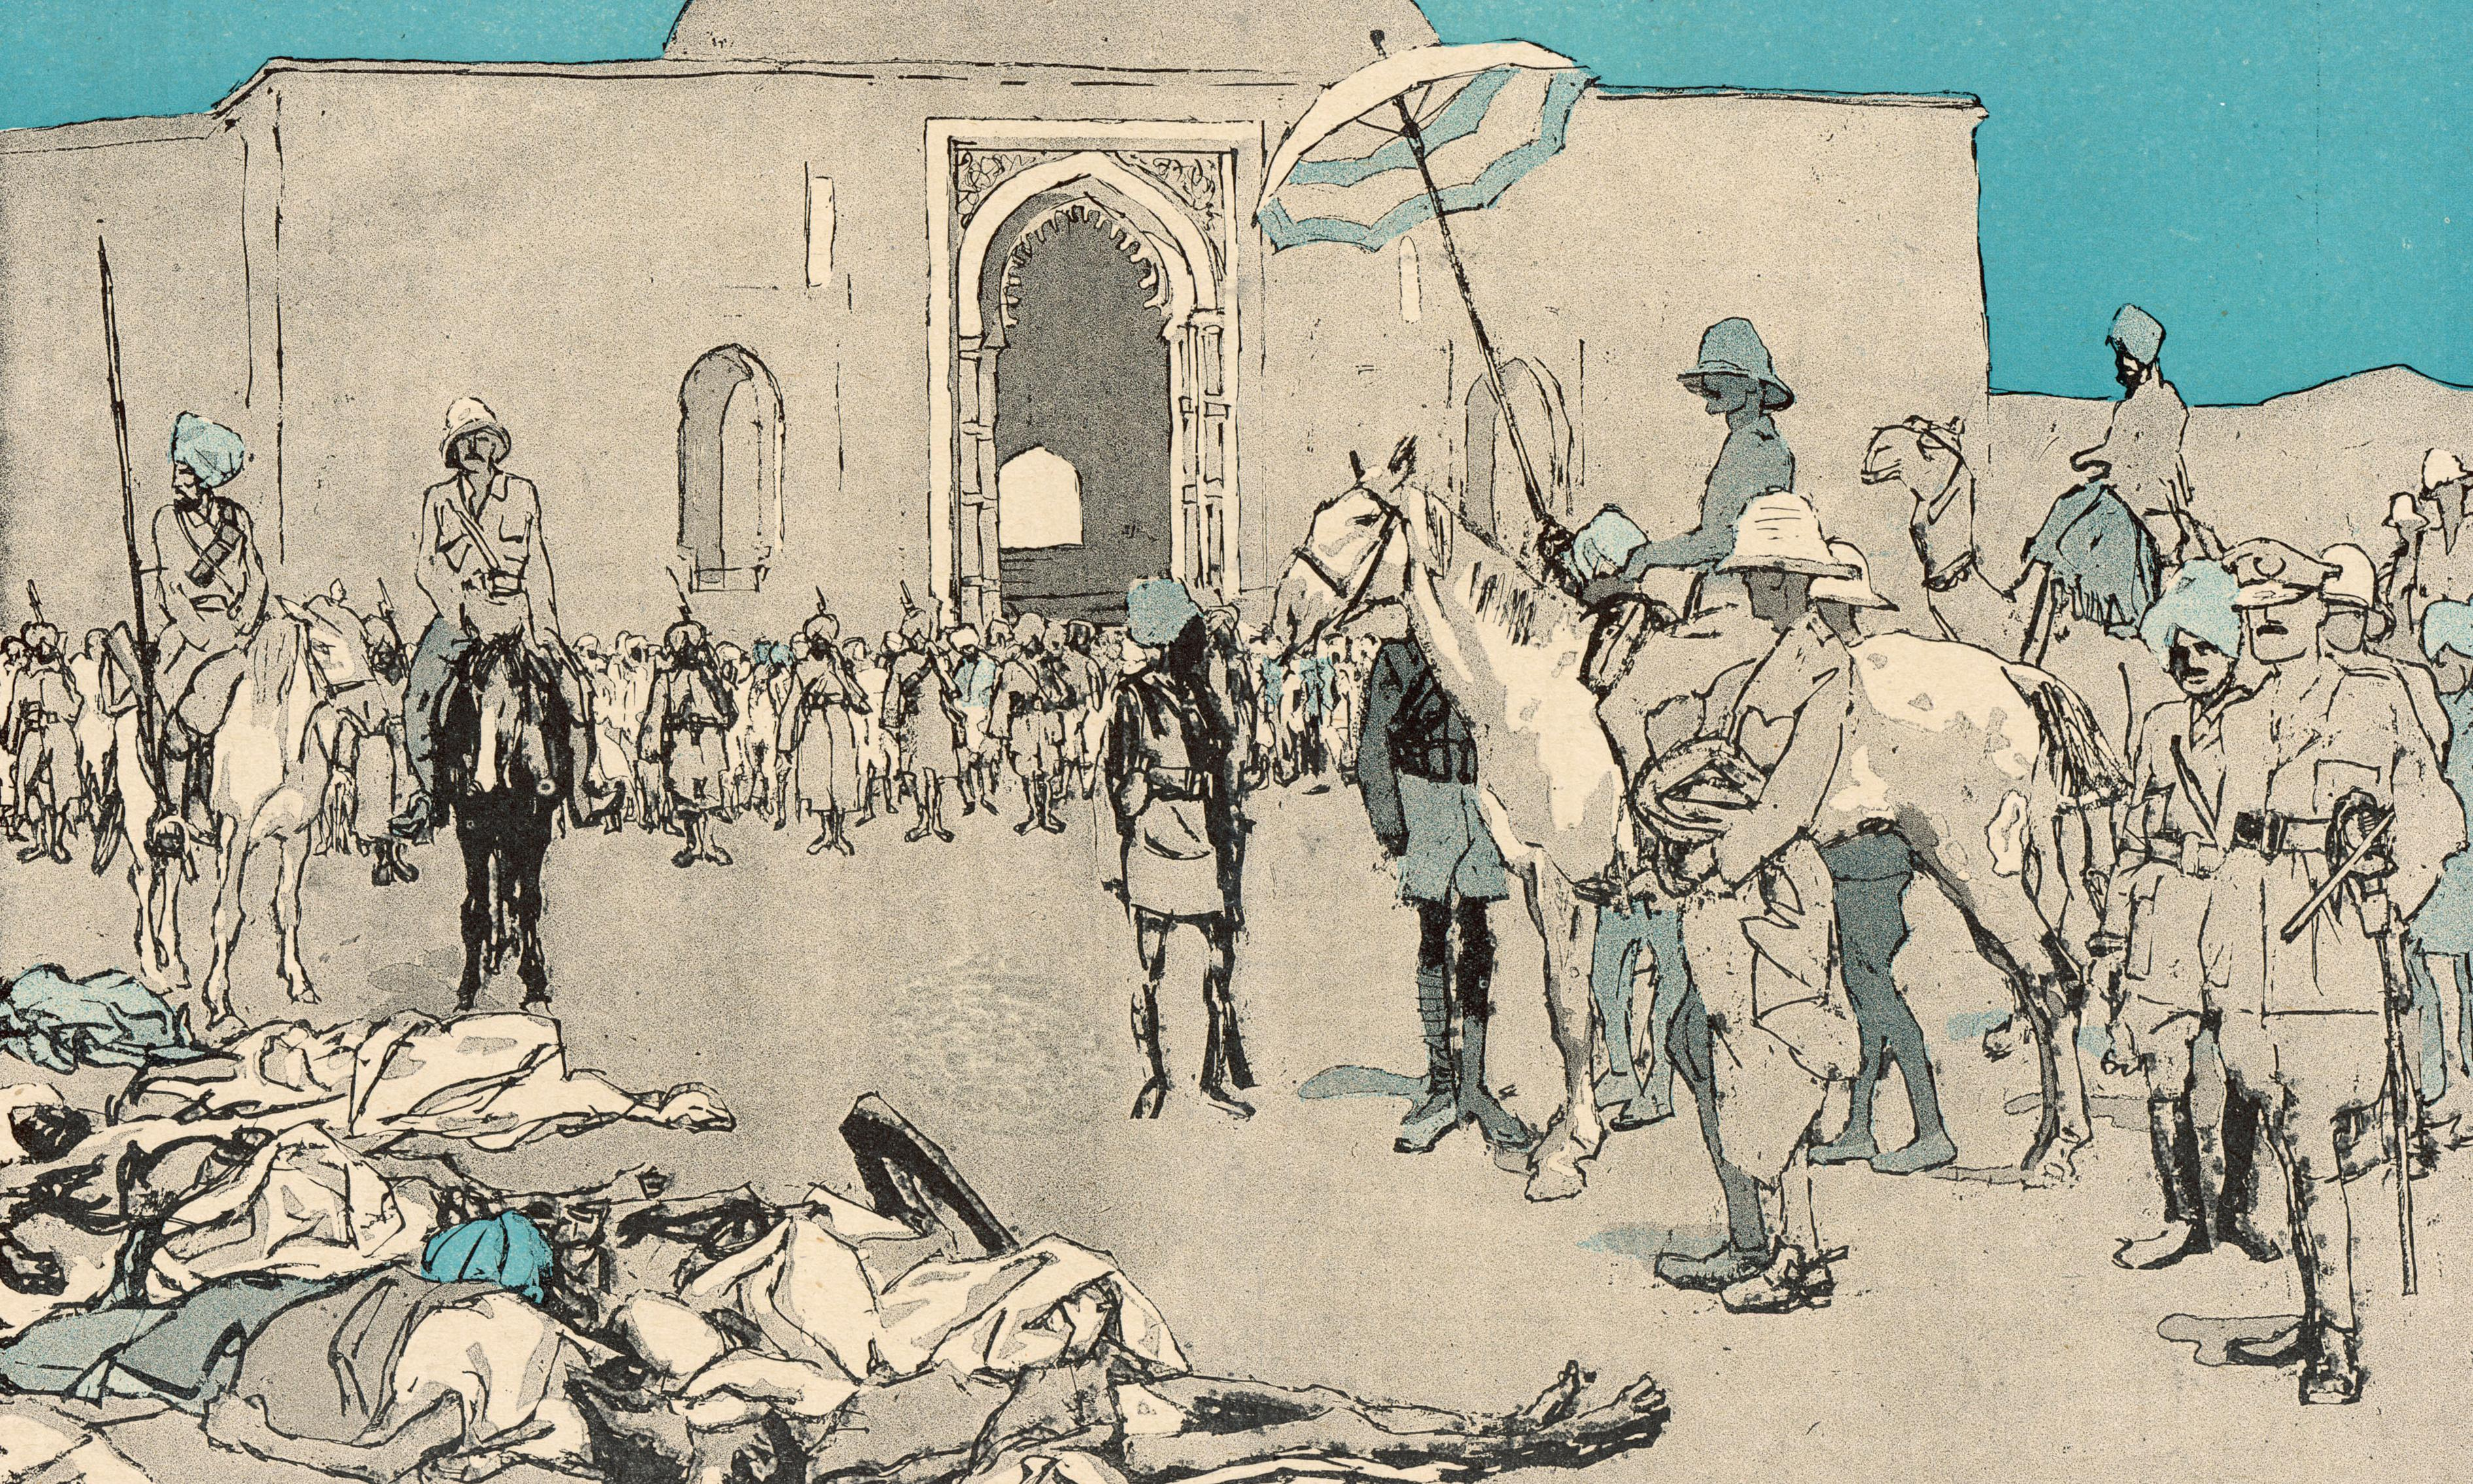 Amritsar, 100 years on, remains an atrocity Britain cannot be allowed to forget